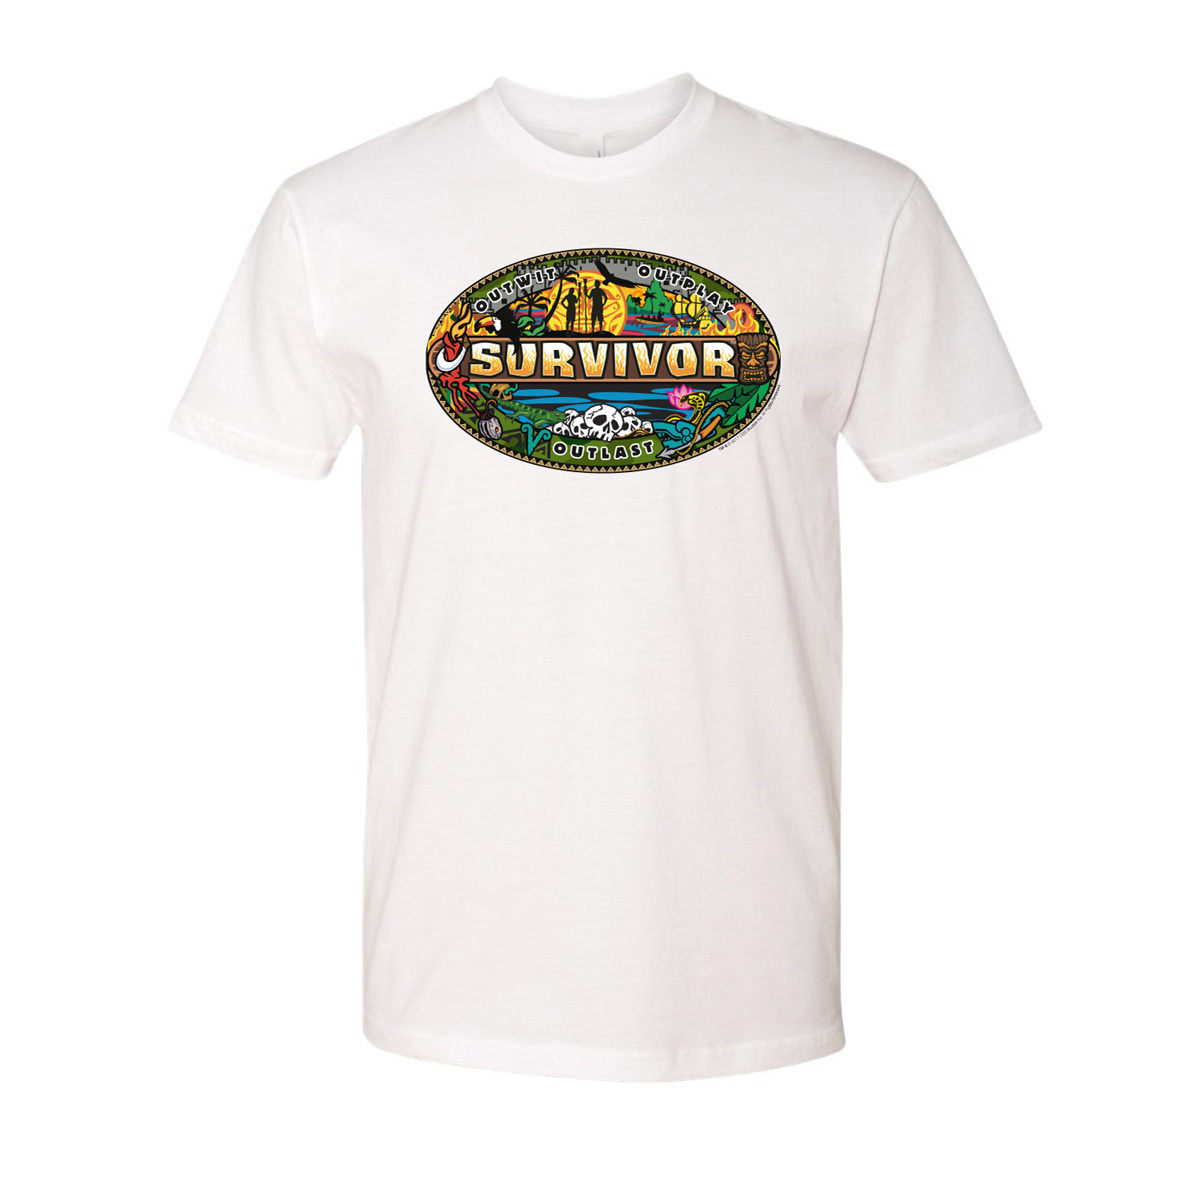 Survivor Mash-Up T-Shirt (White)